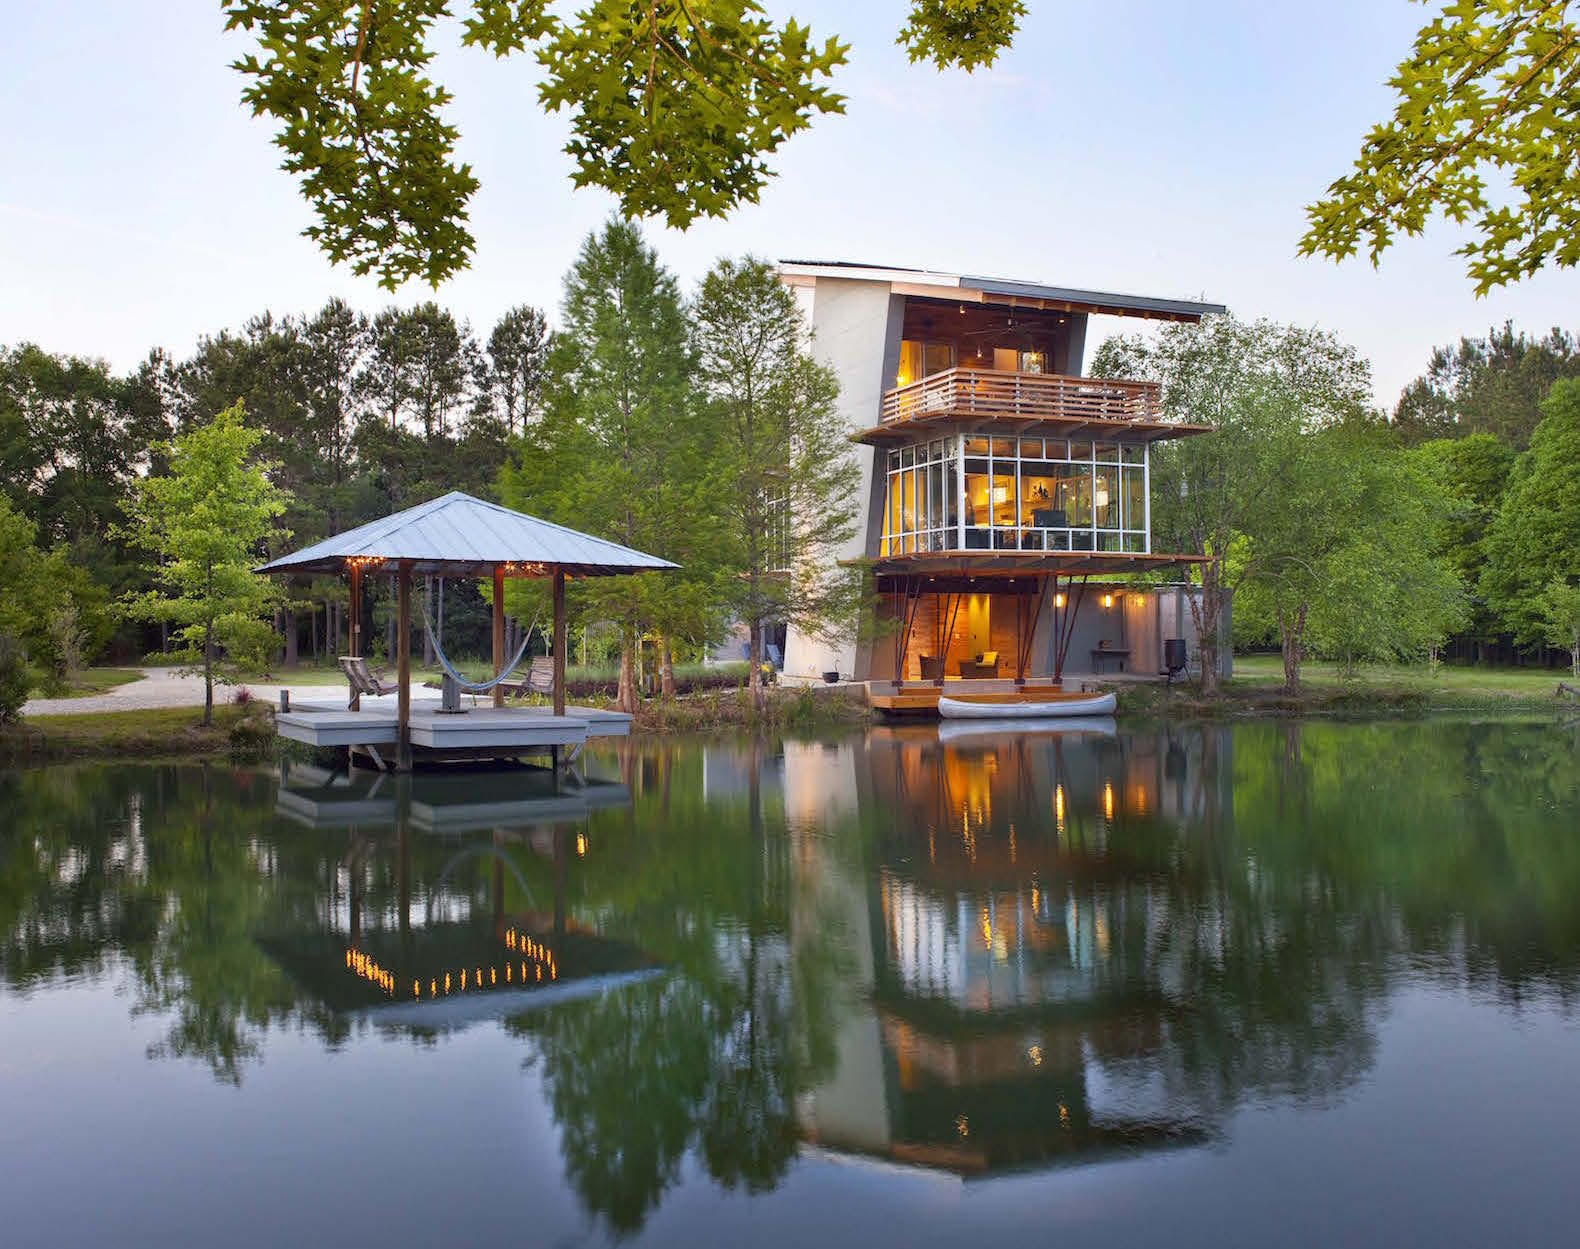 Gorgeous Pond House is a zero-energy 'dream house' retreat in Louisiana